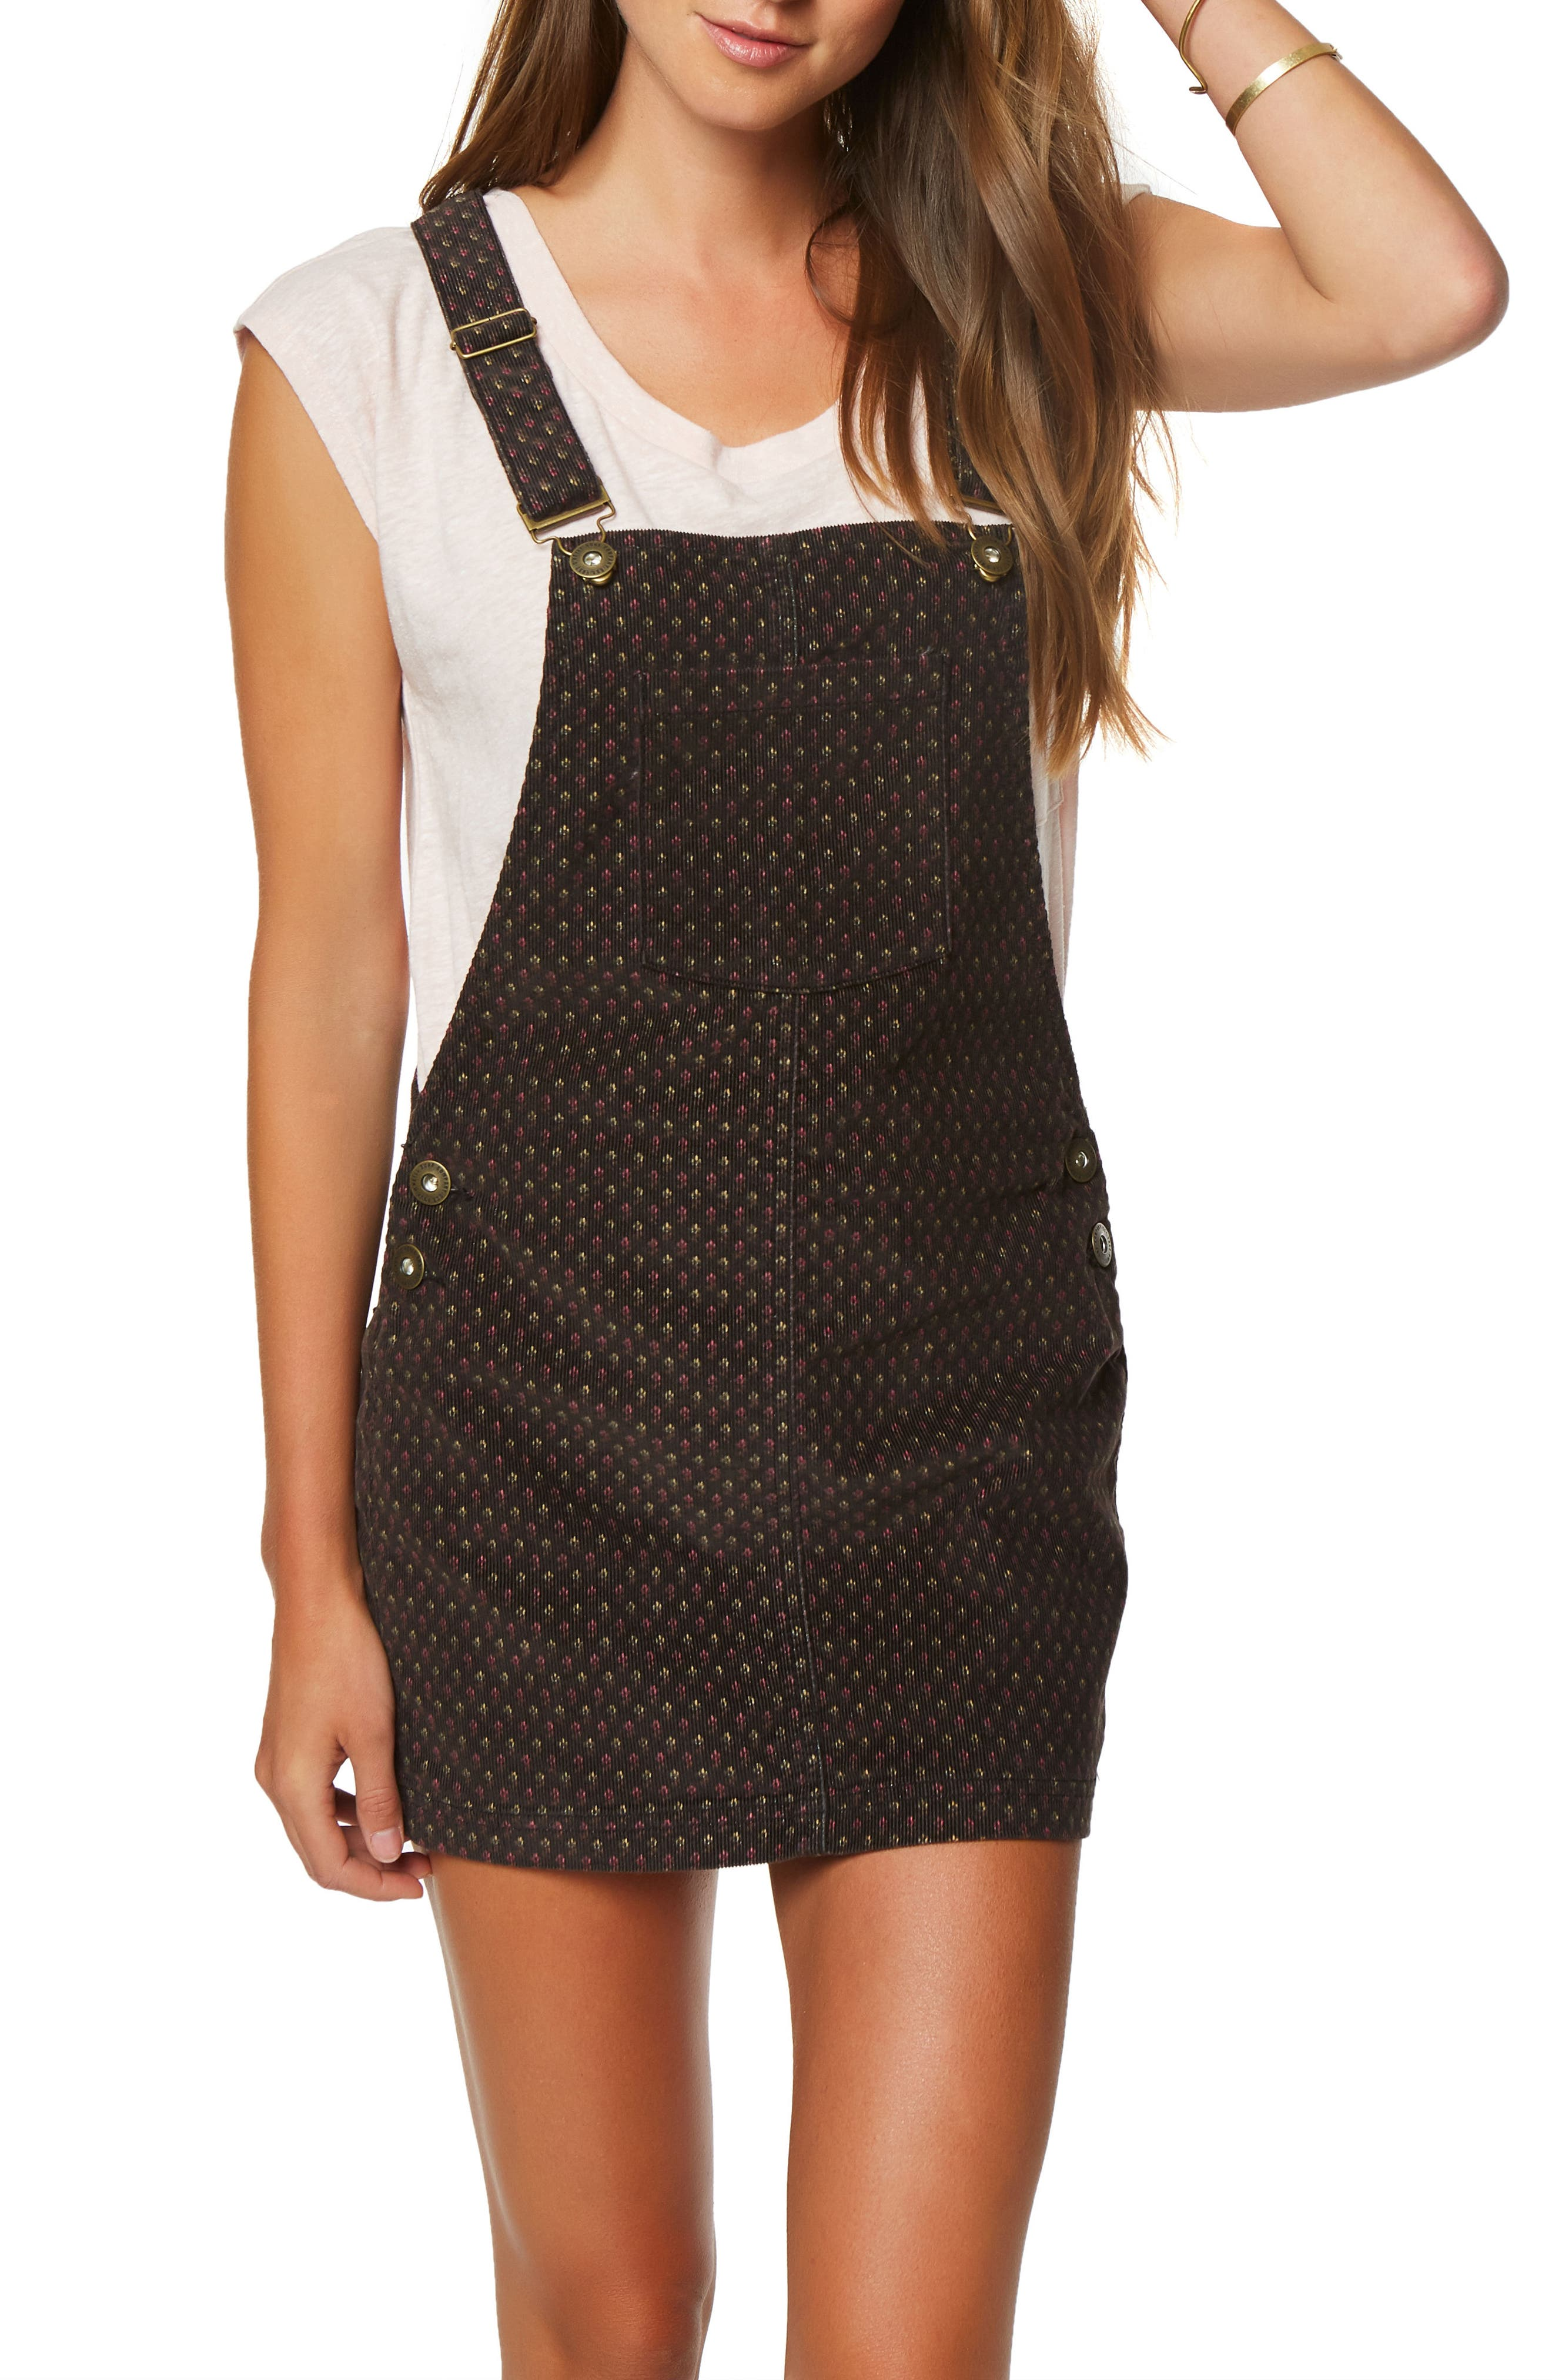 Kipling Print Corduroy Pinafore Dress,                             Main thumbnail 1, color,                             Black